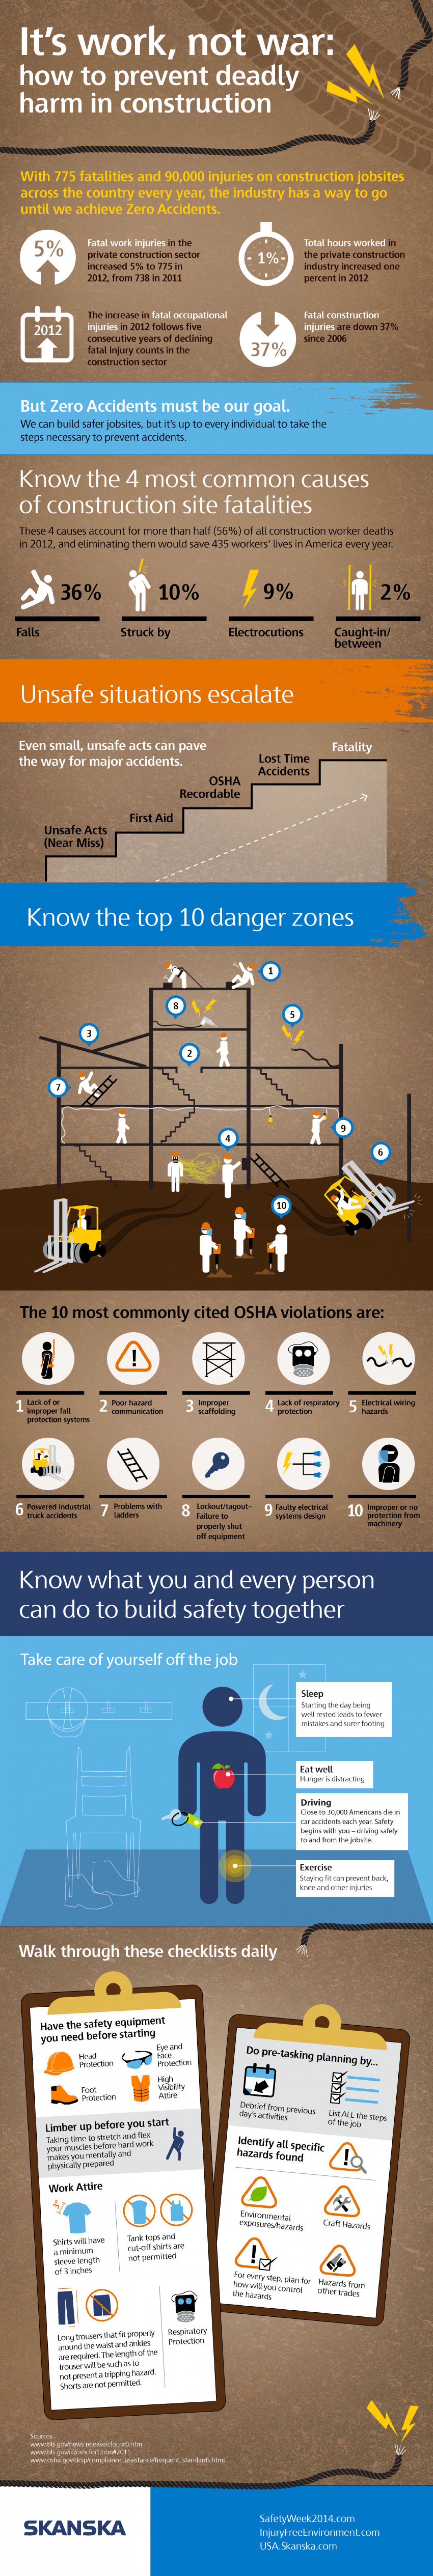 It's Work, Not War: How to Prevent Deadly Harm in Construction Infographic